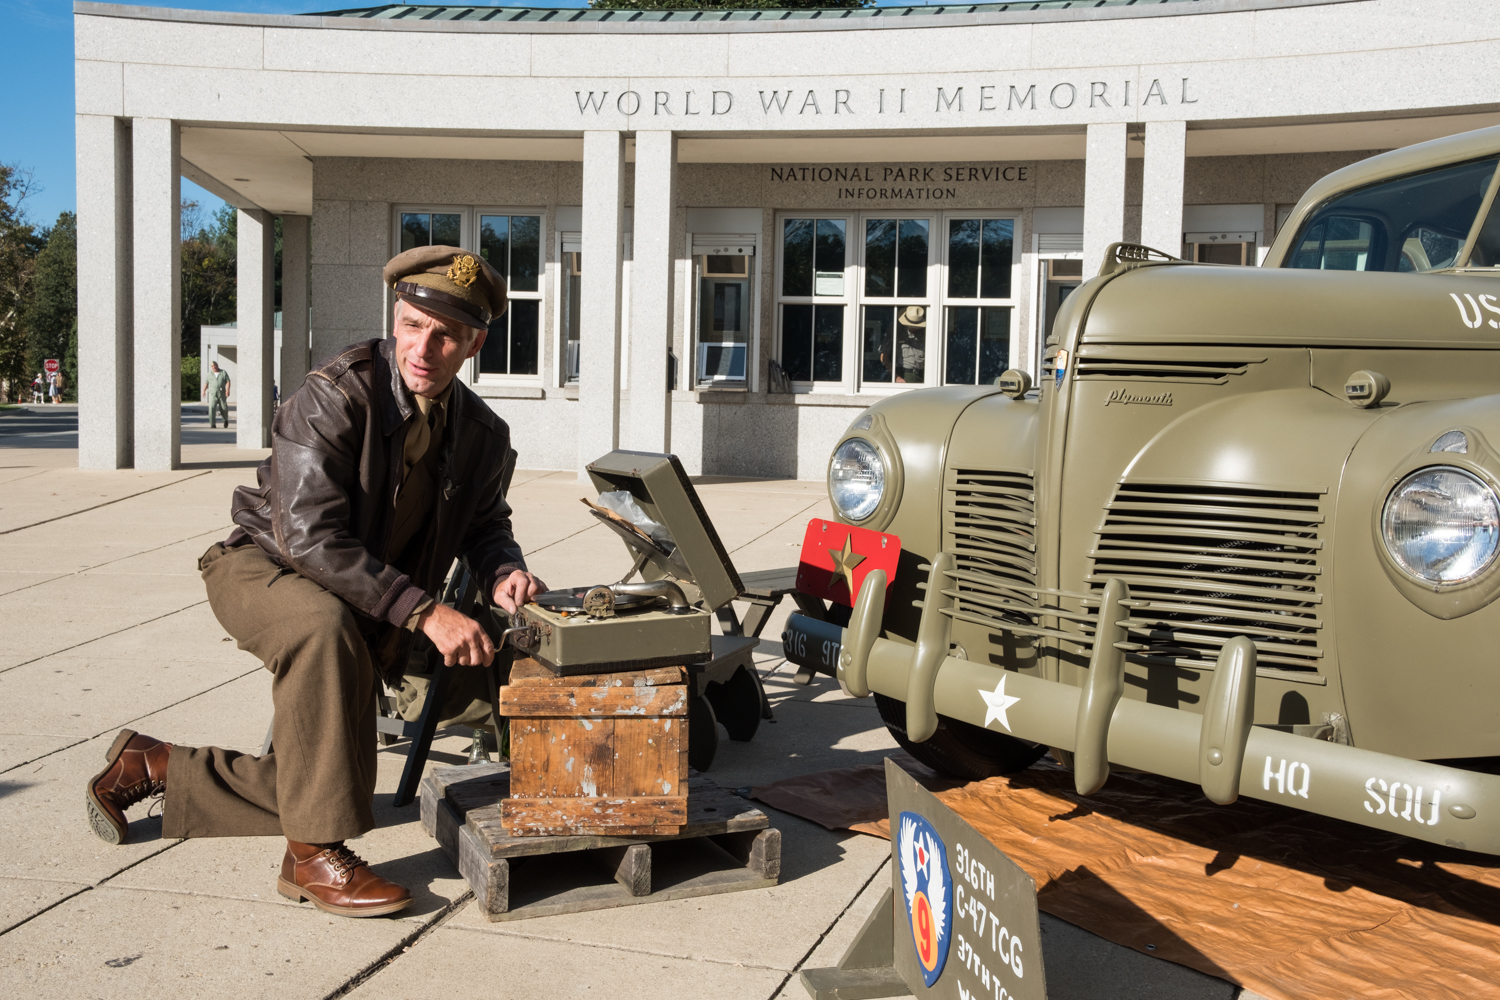 Chris Gabers, a war re-enactor with the Allied Airmen's Preservation Society, winds a record player near the World War II Memorial in Washington, D.C. during an Honor Flight event. Honor Flight is when veterans from around America visit the memorials on The National Mall.